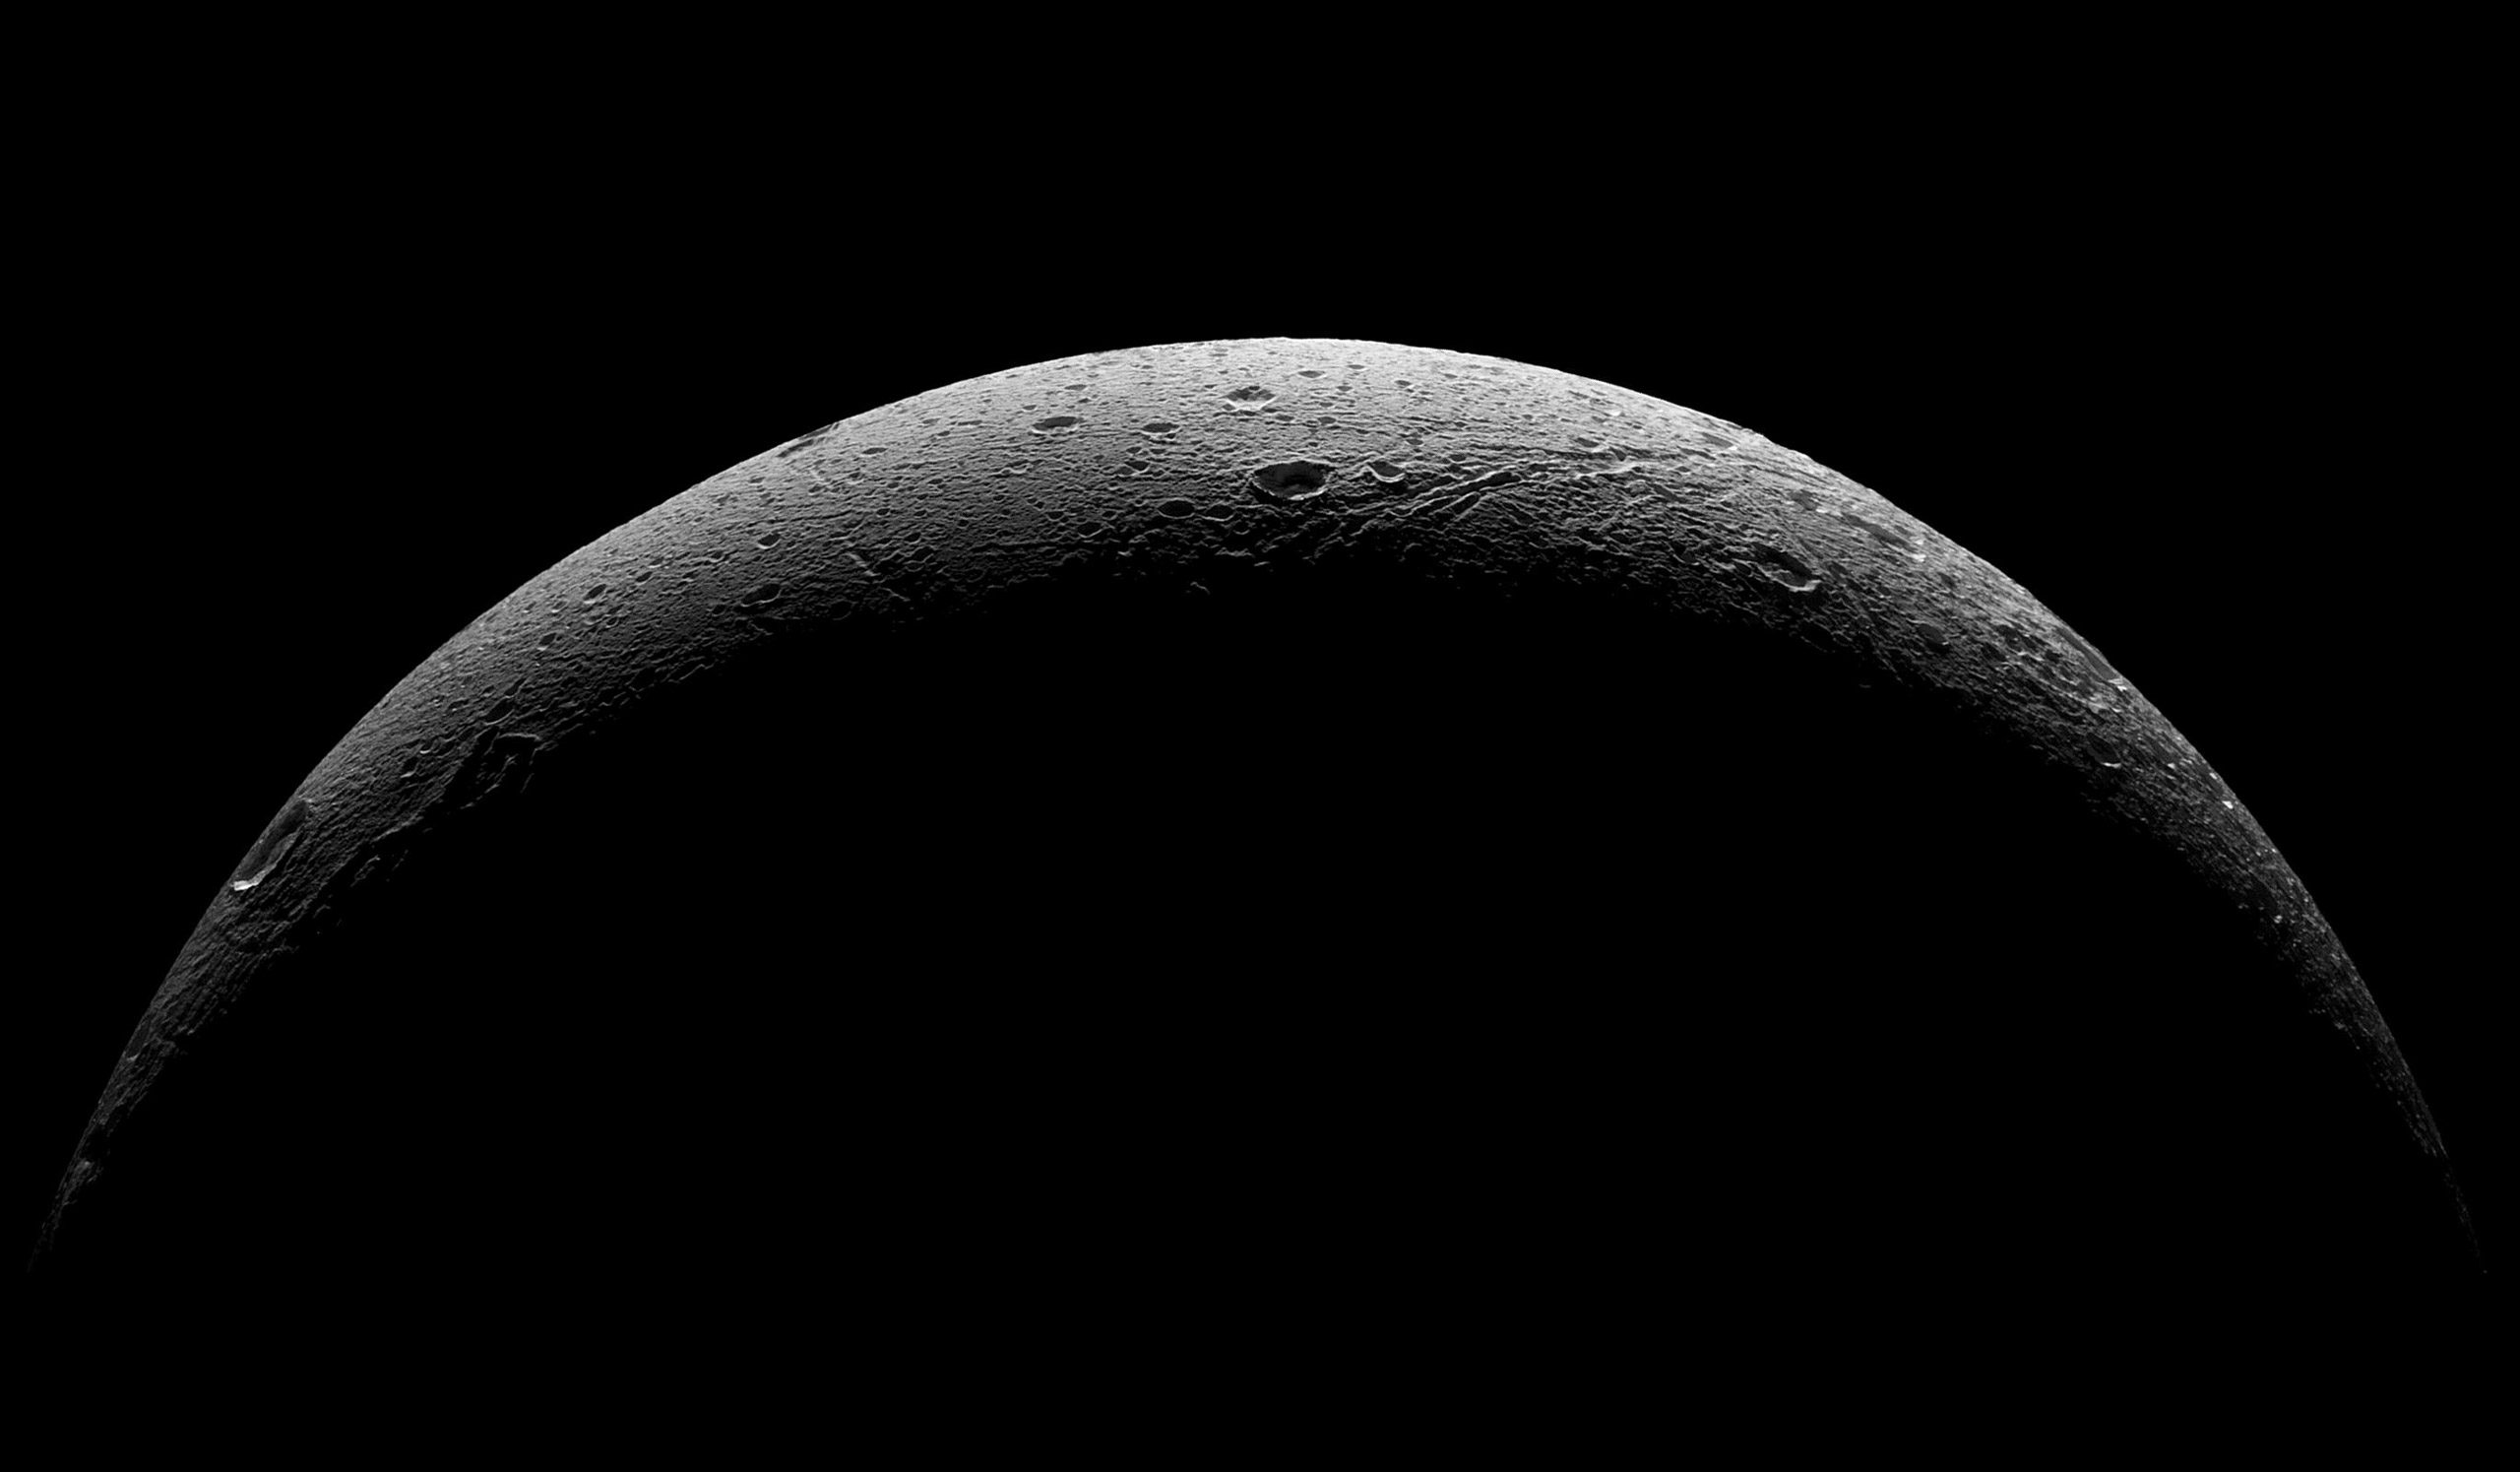 The rough and icy crescent of Saturn's moon Dione following the spacecraft's last close flyby of the moon on Aug. 17, 2015.